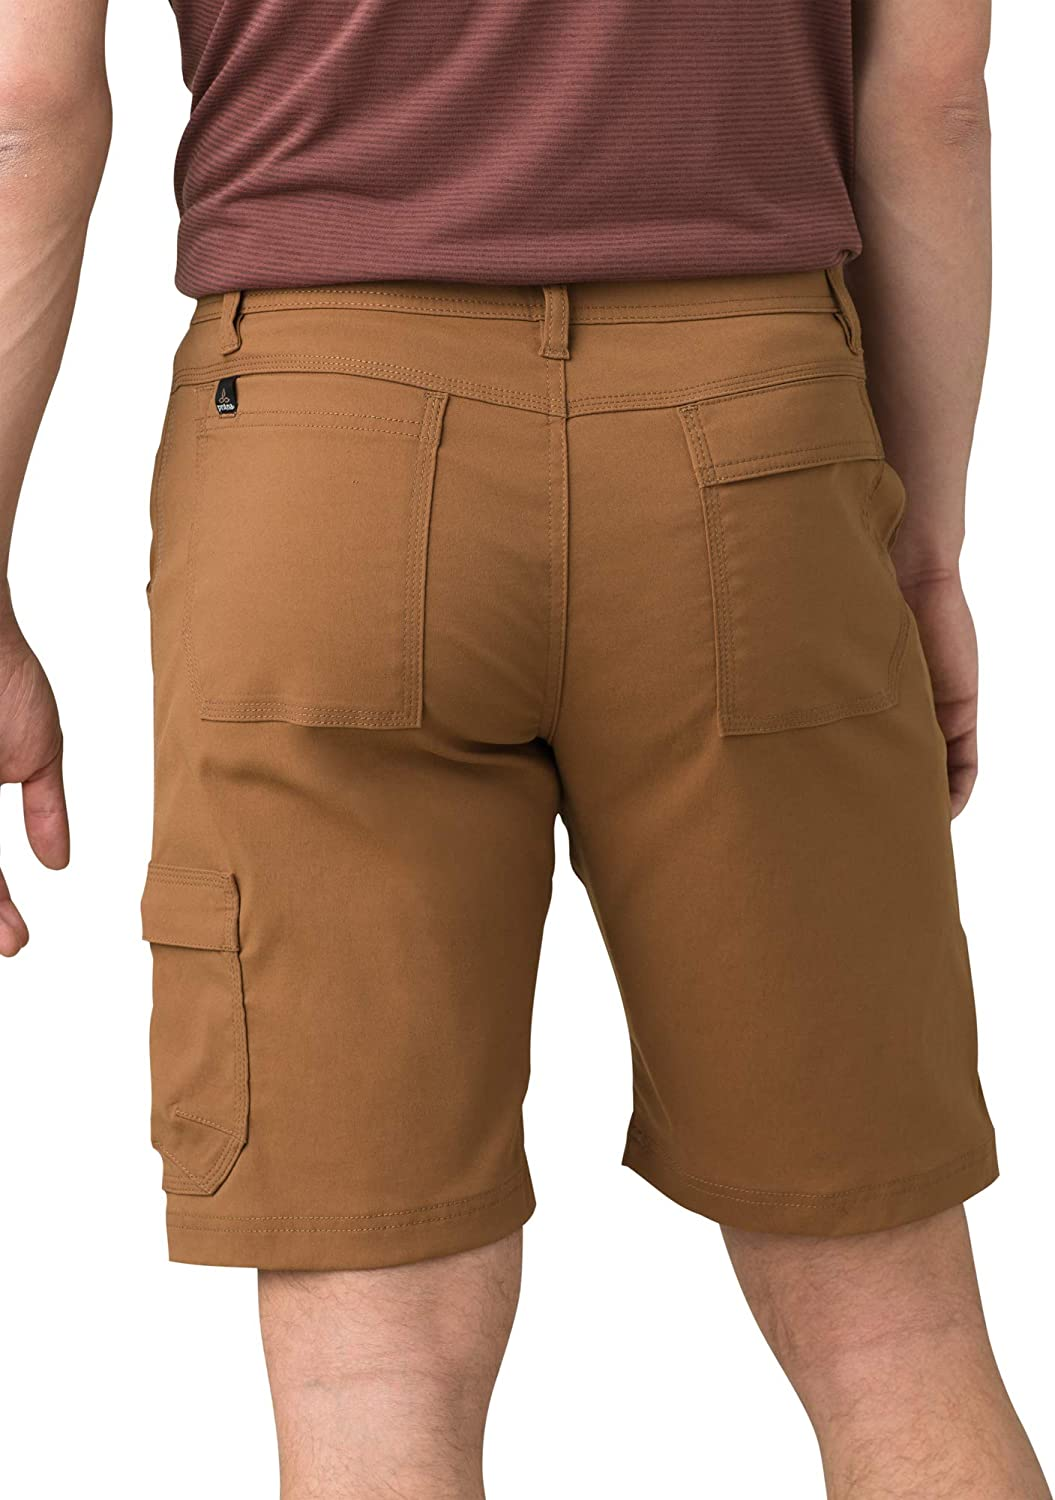 Water-Repellent Shorts for Hiking and Everyday Wear Mens Stretch Zion Lightweight prAna